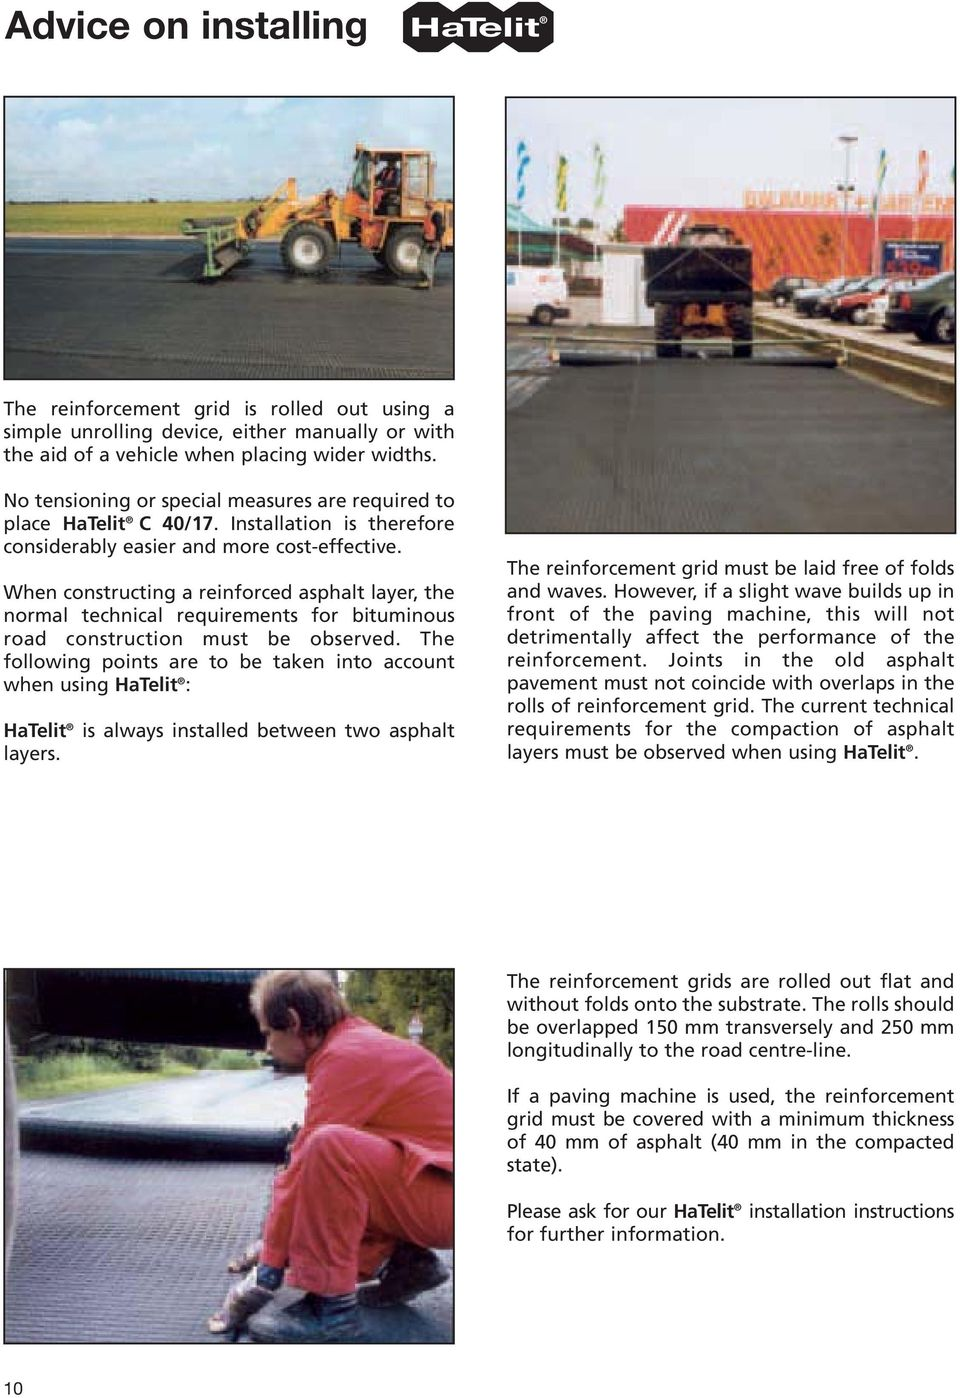 When constructing a reinforced asphalt layer, the normal technical requirements for bituminous road construction must be observed.